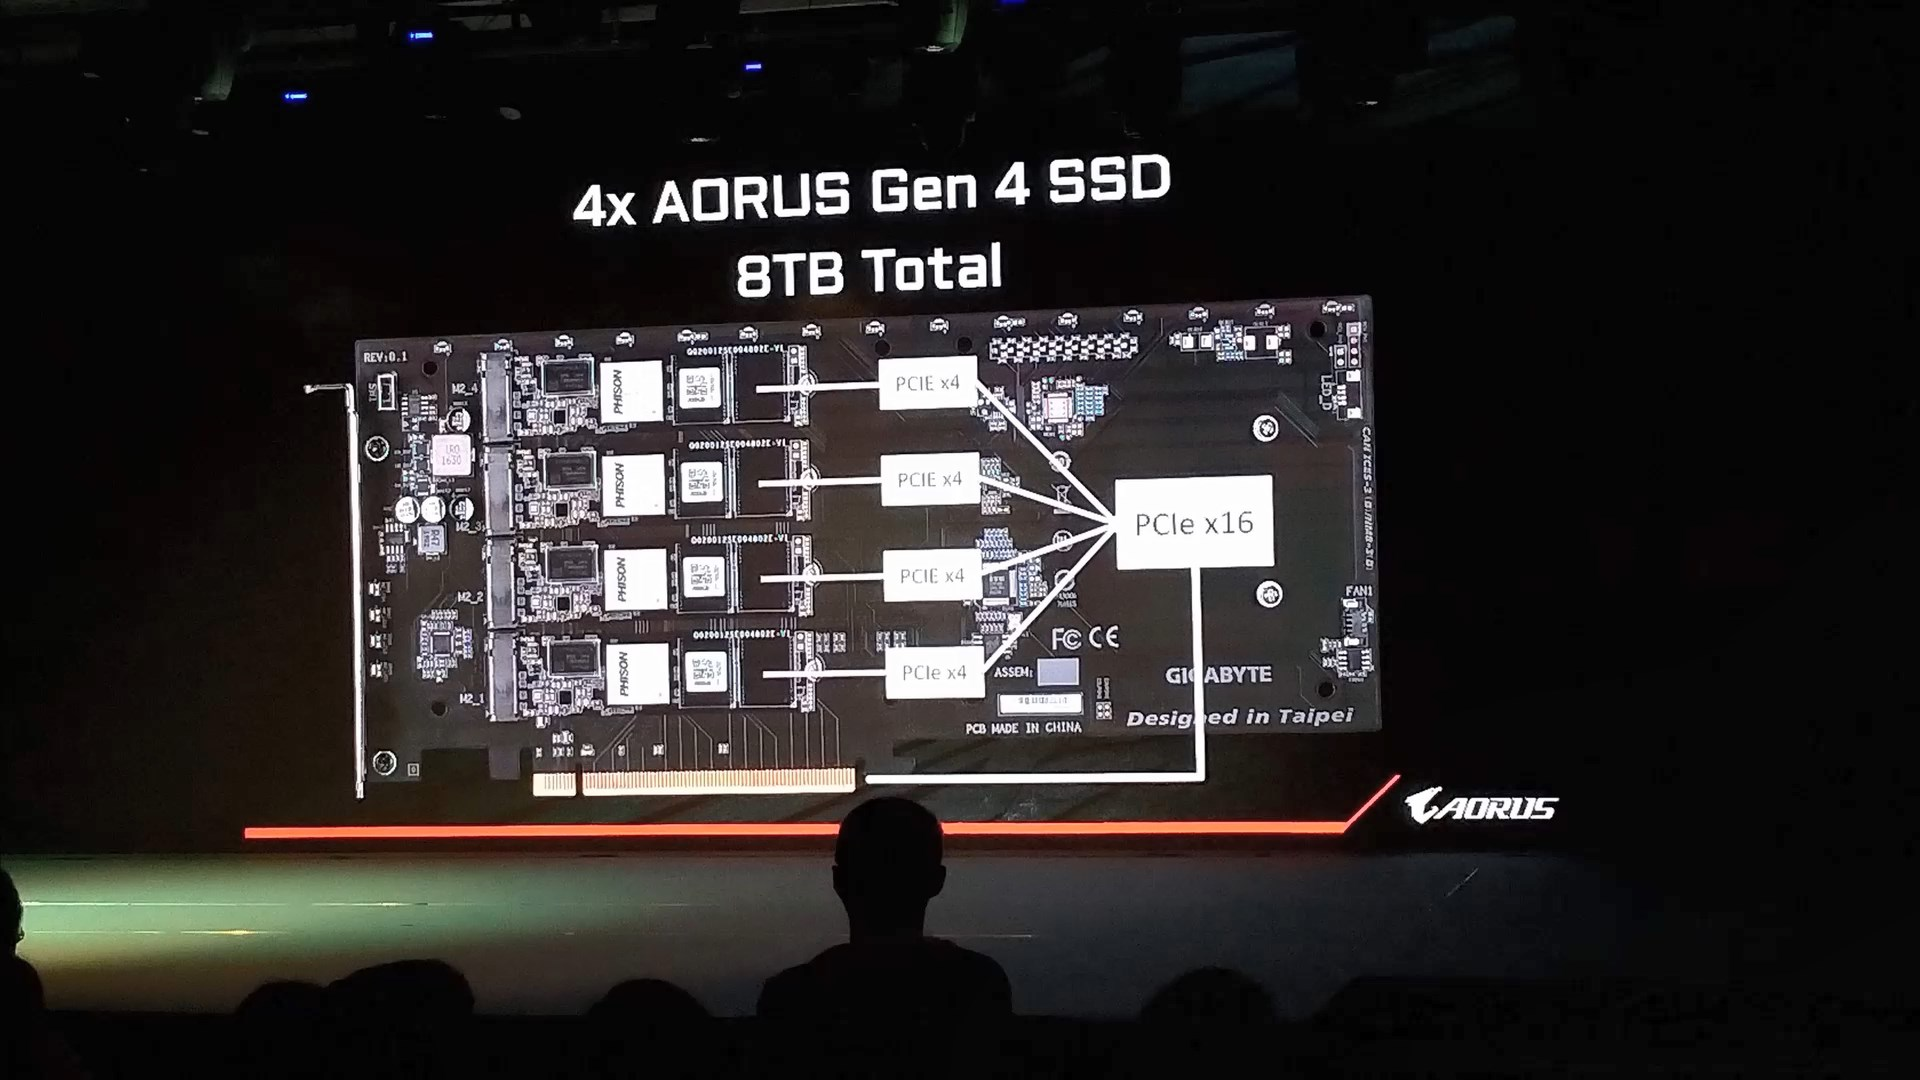 AORUS AIC Gen4 SSD 8TB at Computex 2019 8